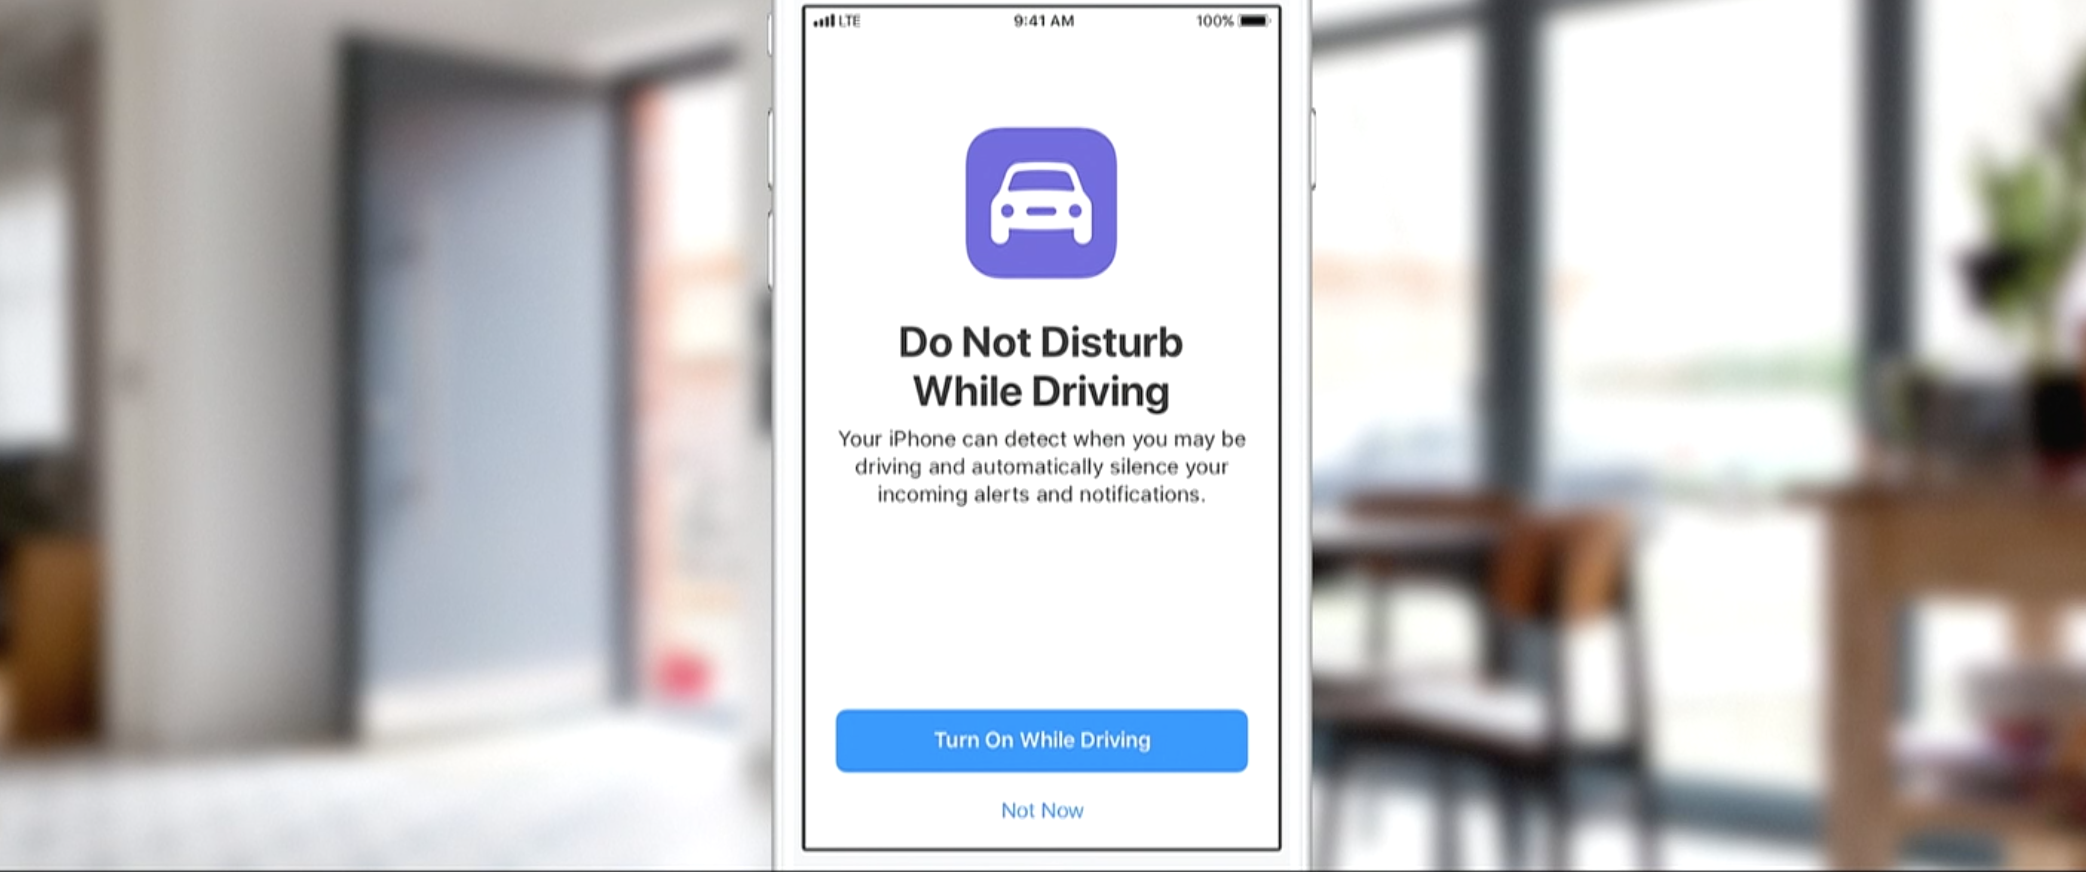 screen shot 2017 06 22 at 11 58 29 am - Do Not Disturb While Driving feature rolls out in Apple's newest iOS 11 beta